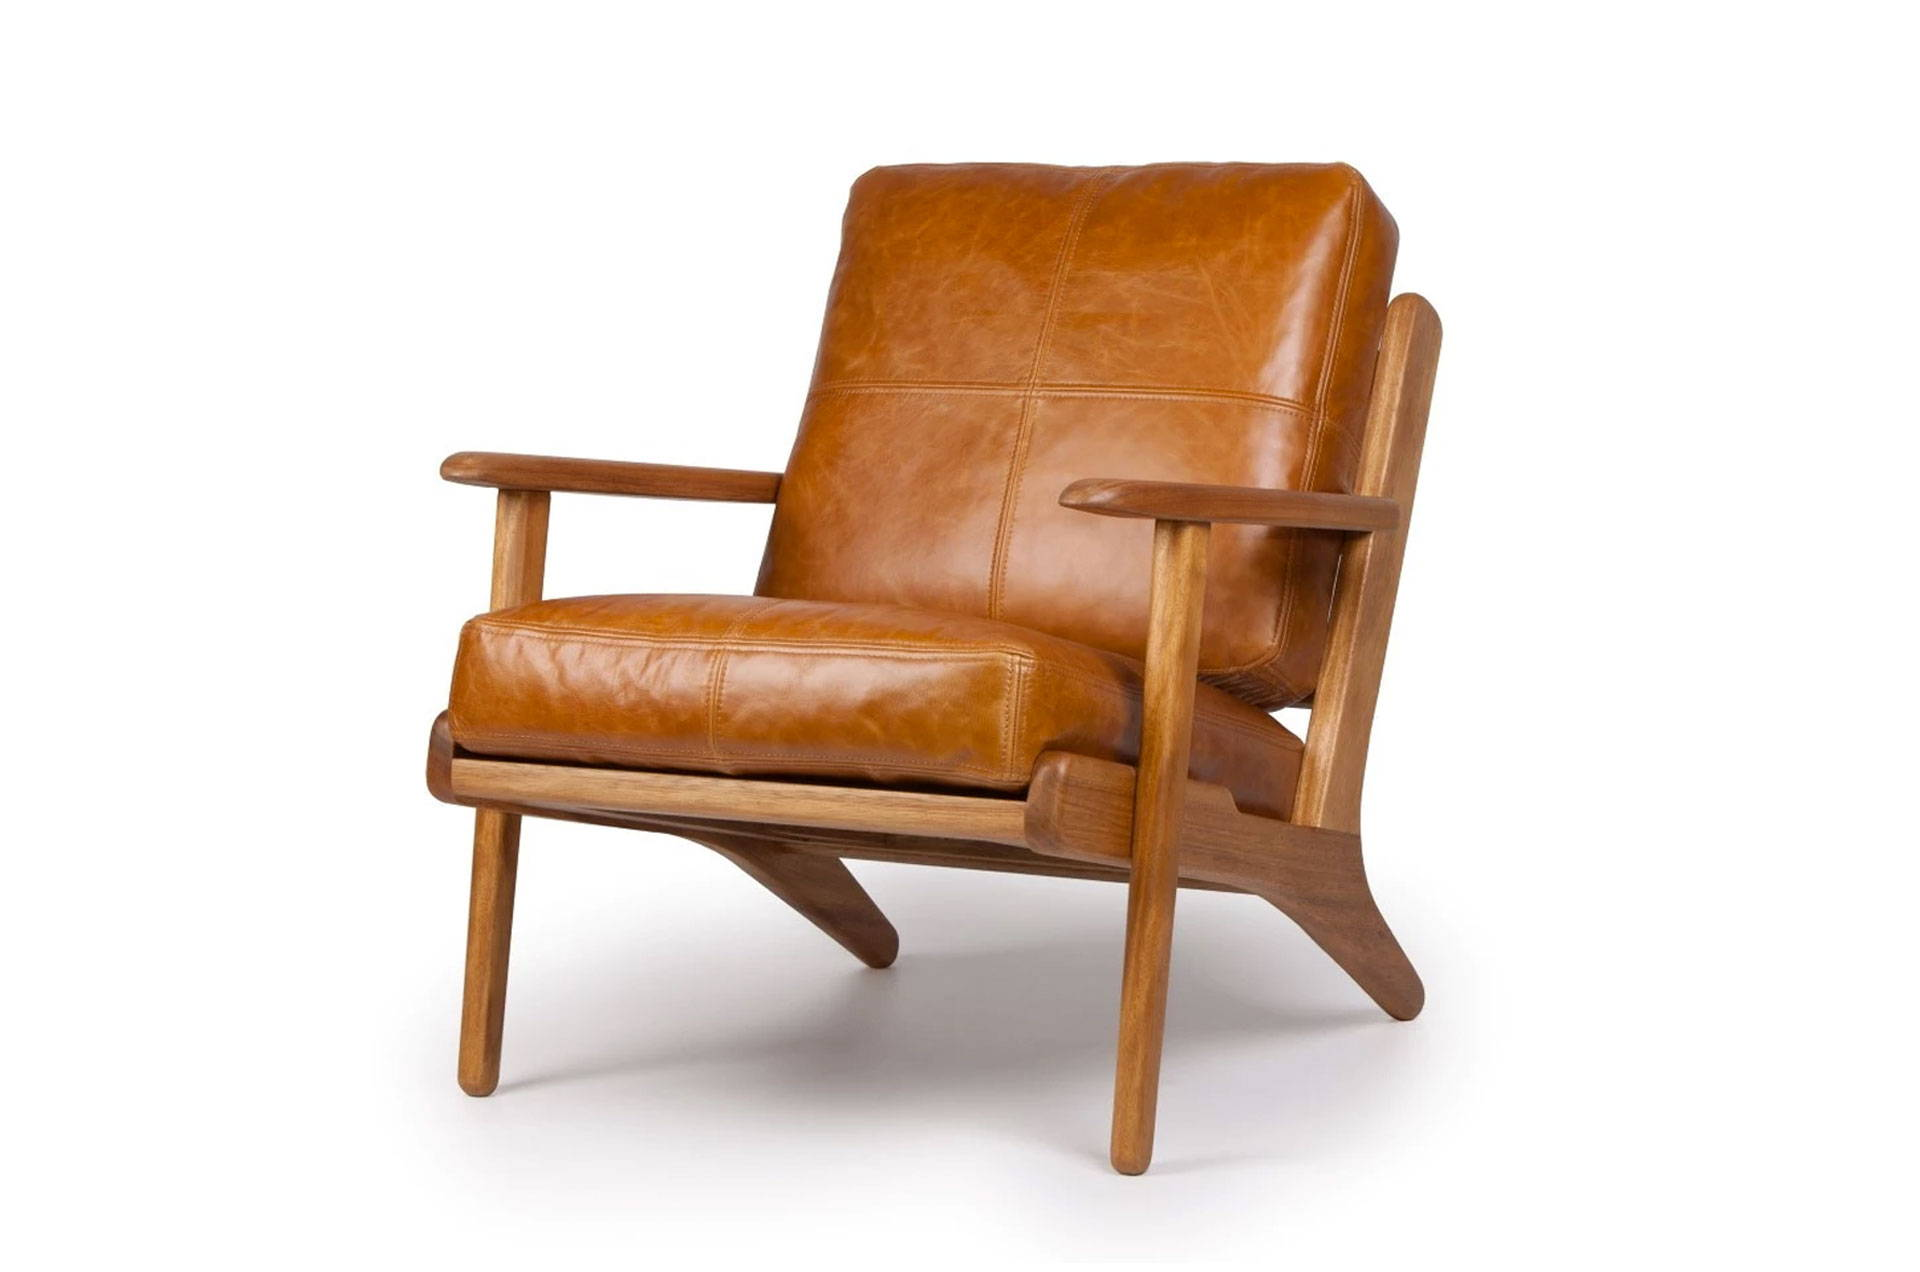 Modern Lounge Chairs & Armchairs | The Modern Furniture Store